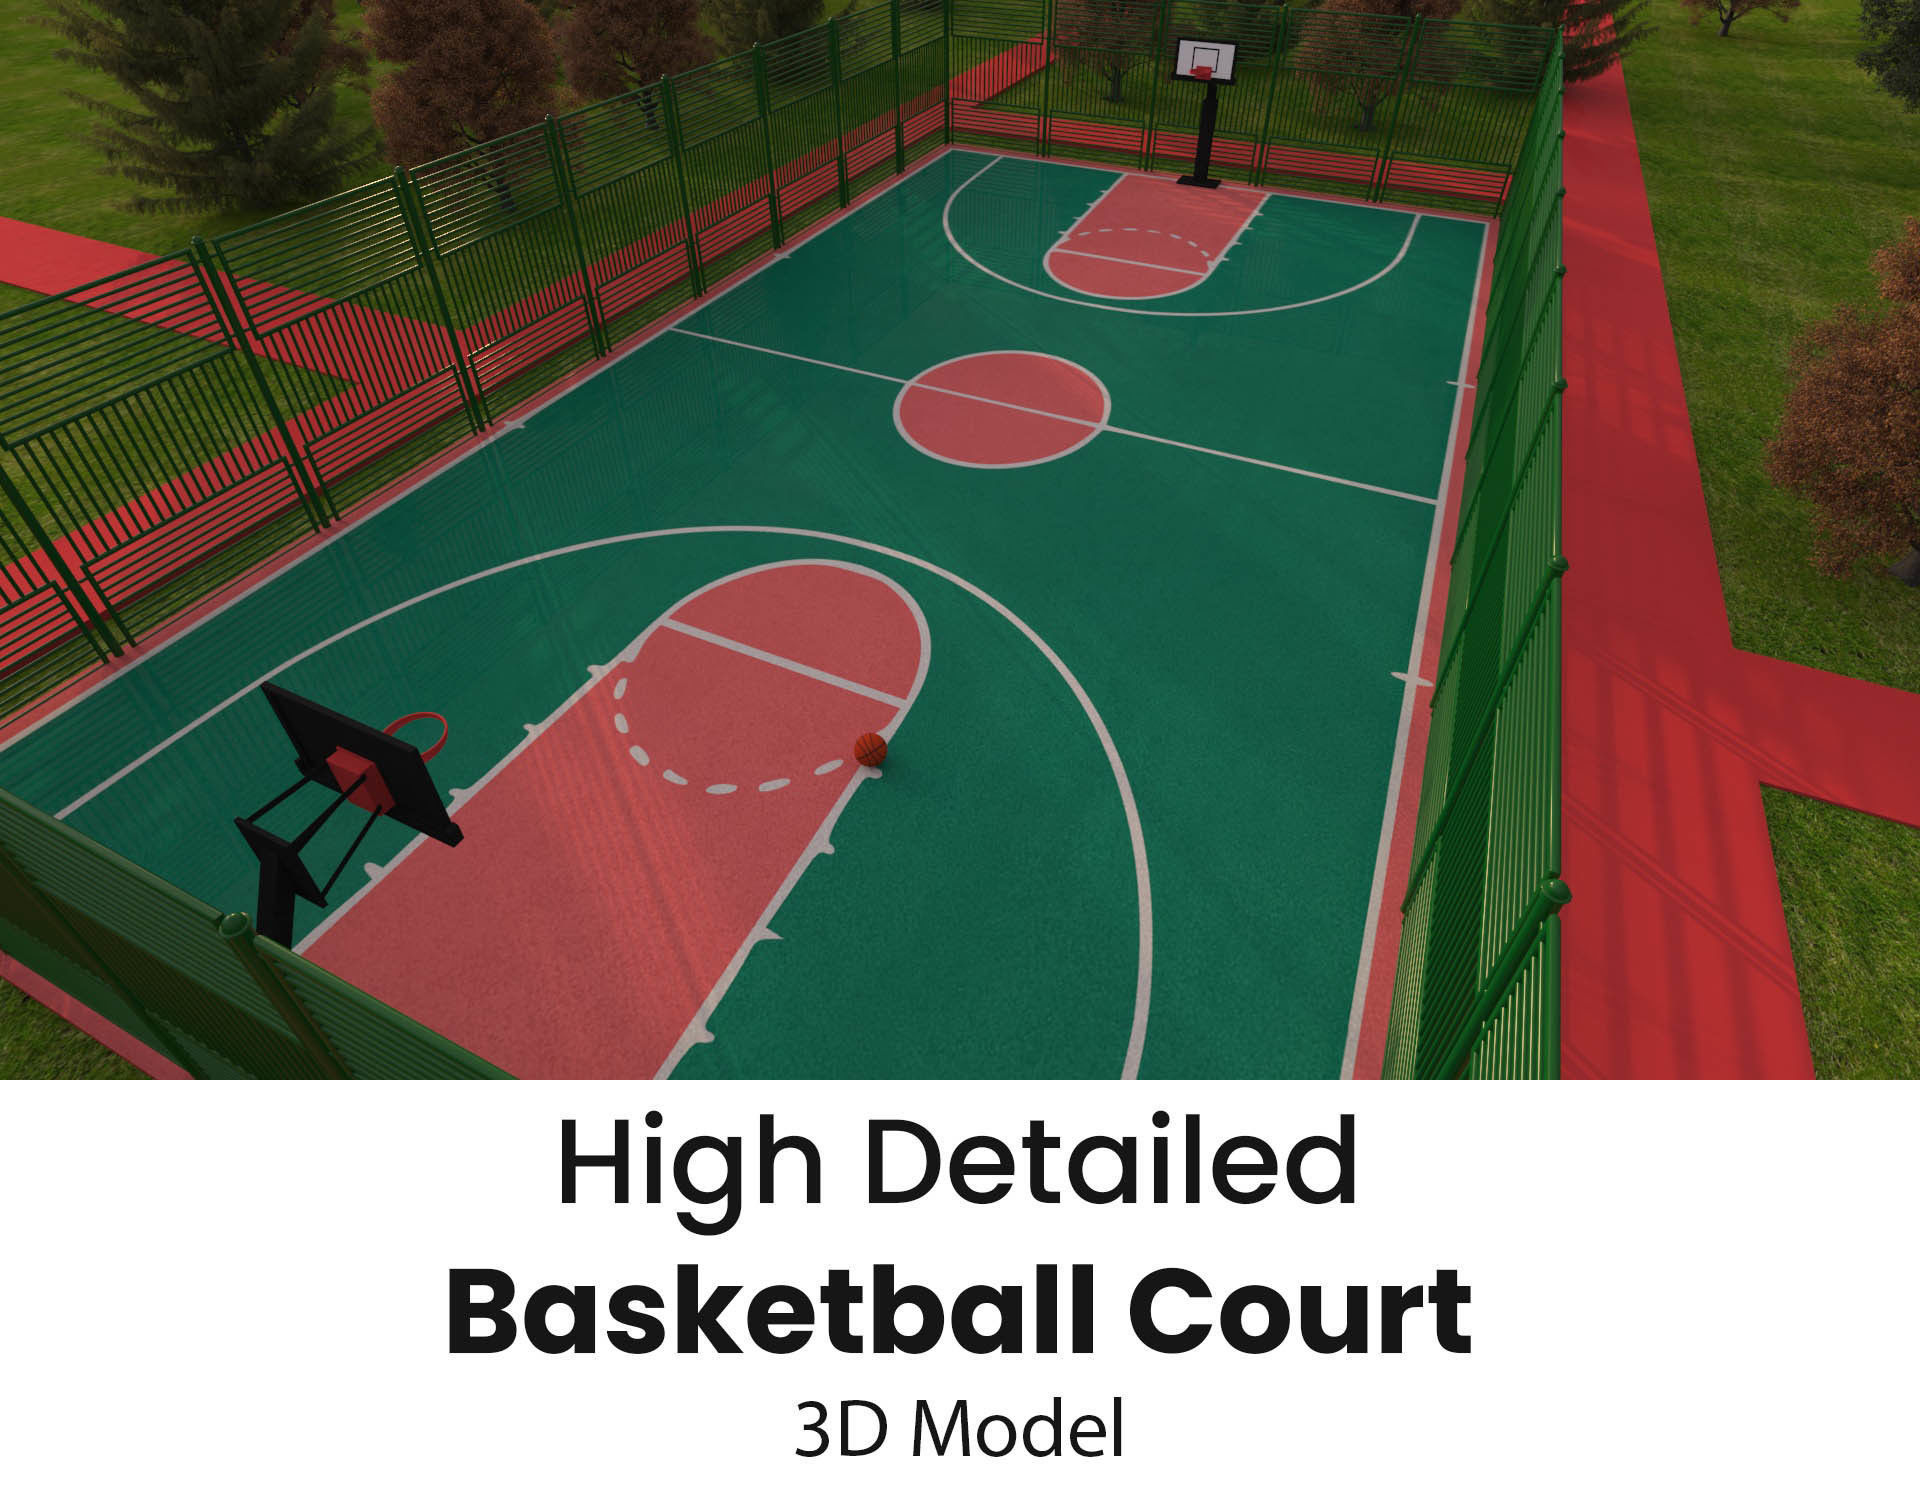 Detailed Outdoor Basketball Court - Low Poly